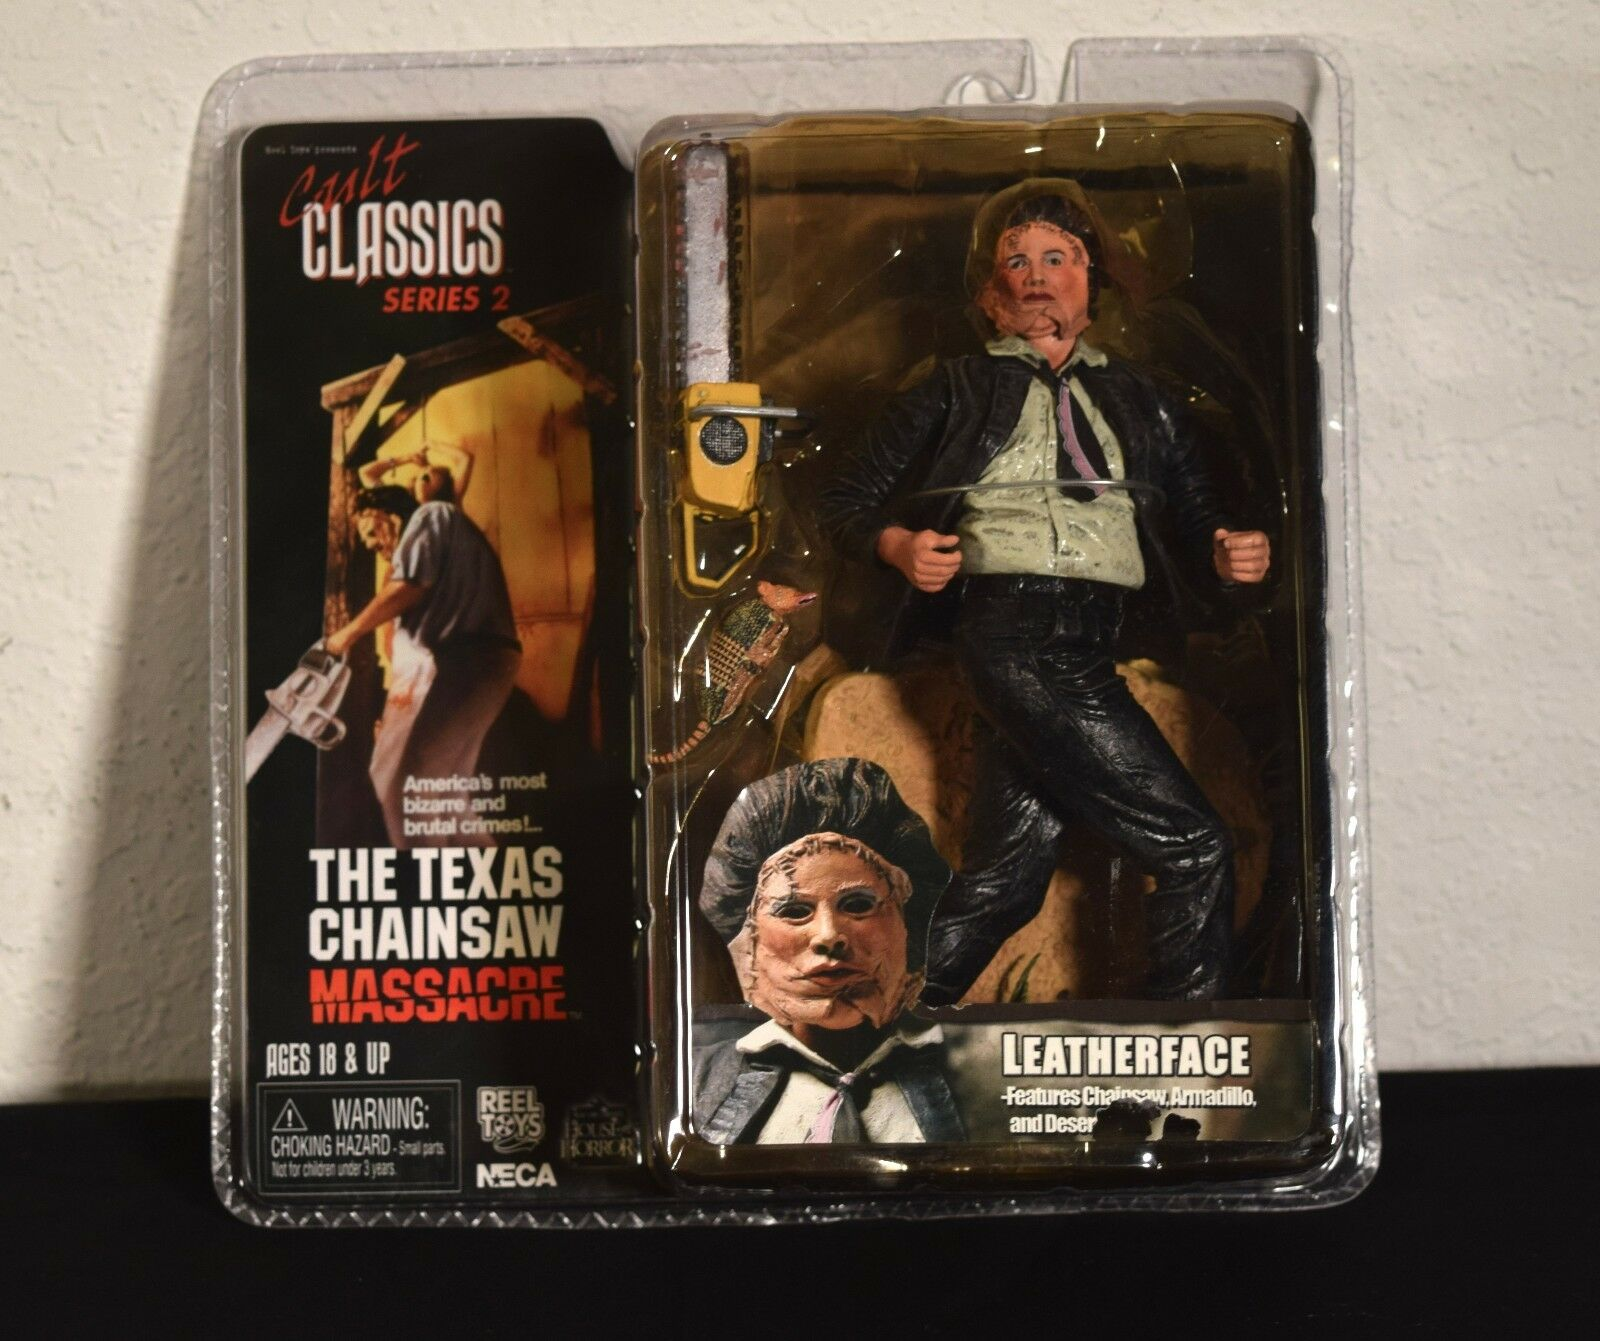 NECA Cult Classics series 2. Leatherface Texas Chainsaw Massacre Unopened. MIB.